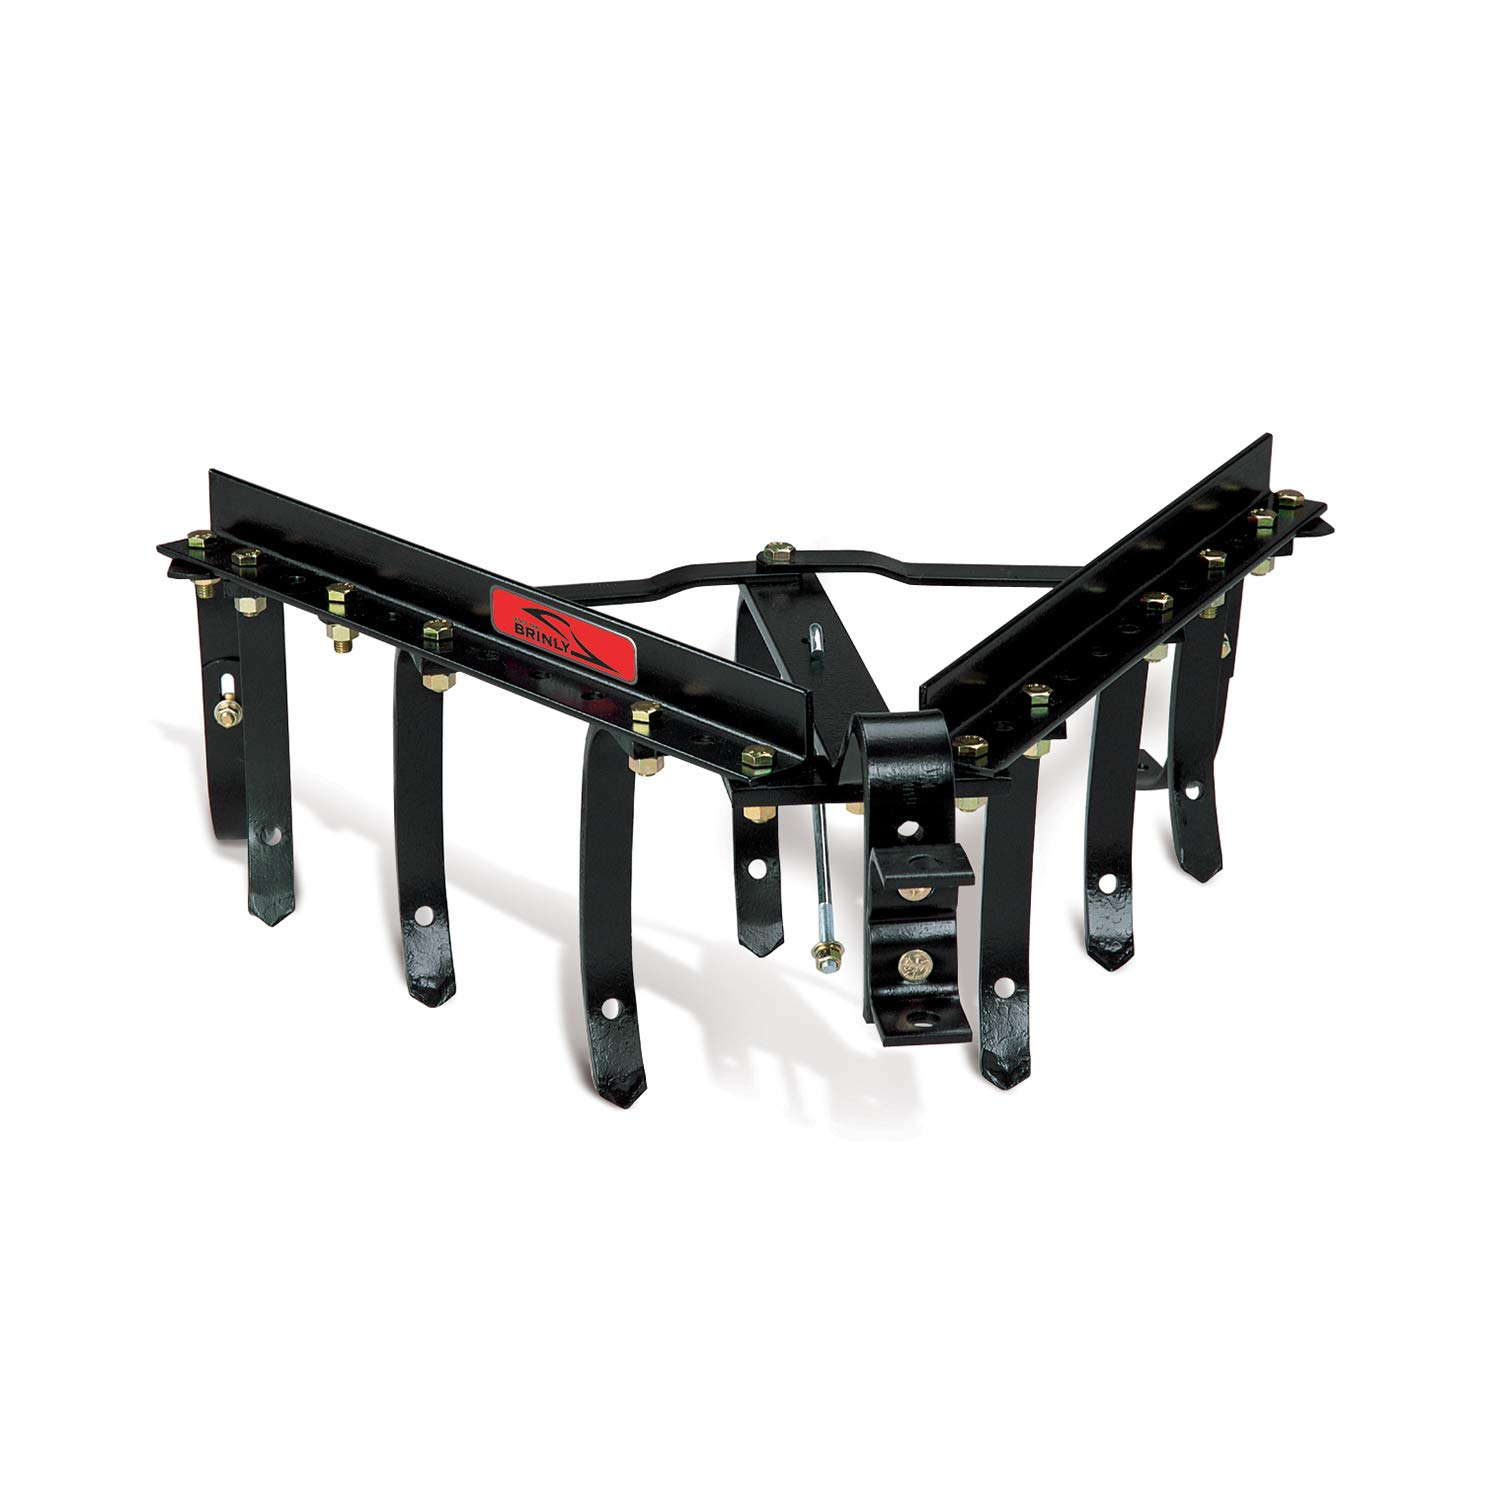 Brinly CC-56BH Sleeve Hitch Adjustable Tow Behind Cultivator, 18 by 40-Inch by Brinly